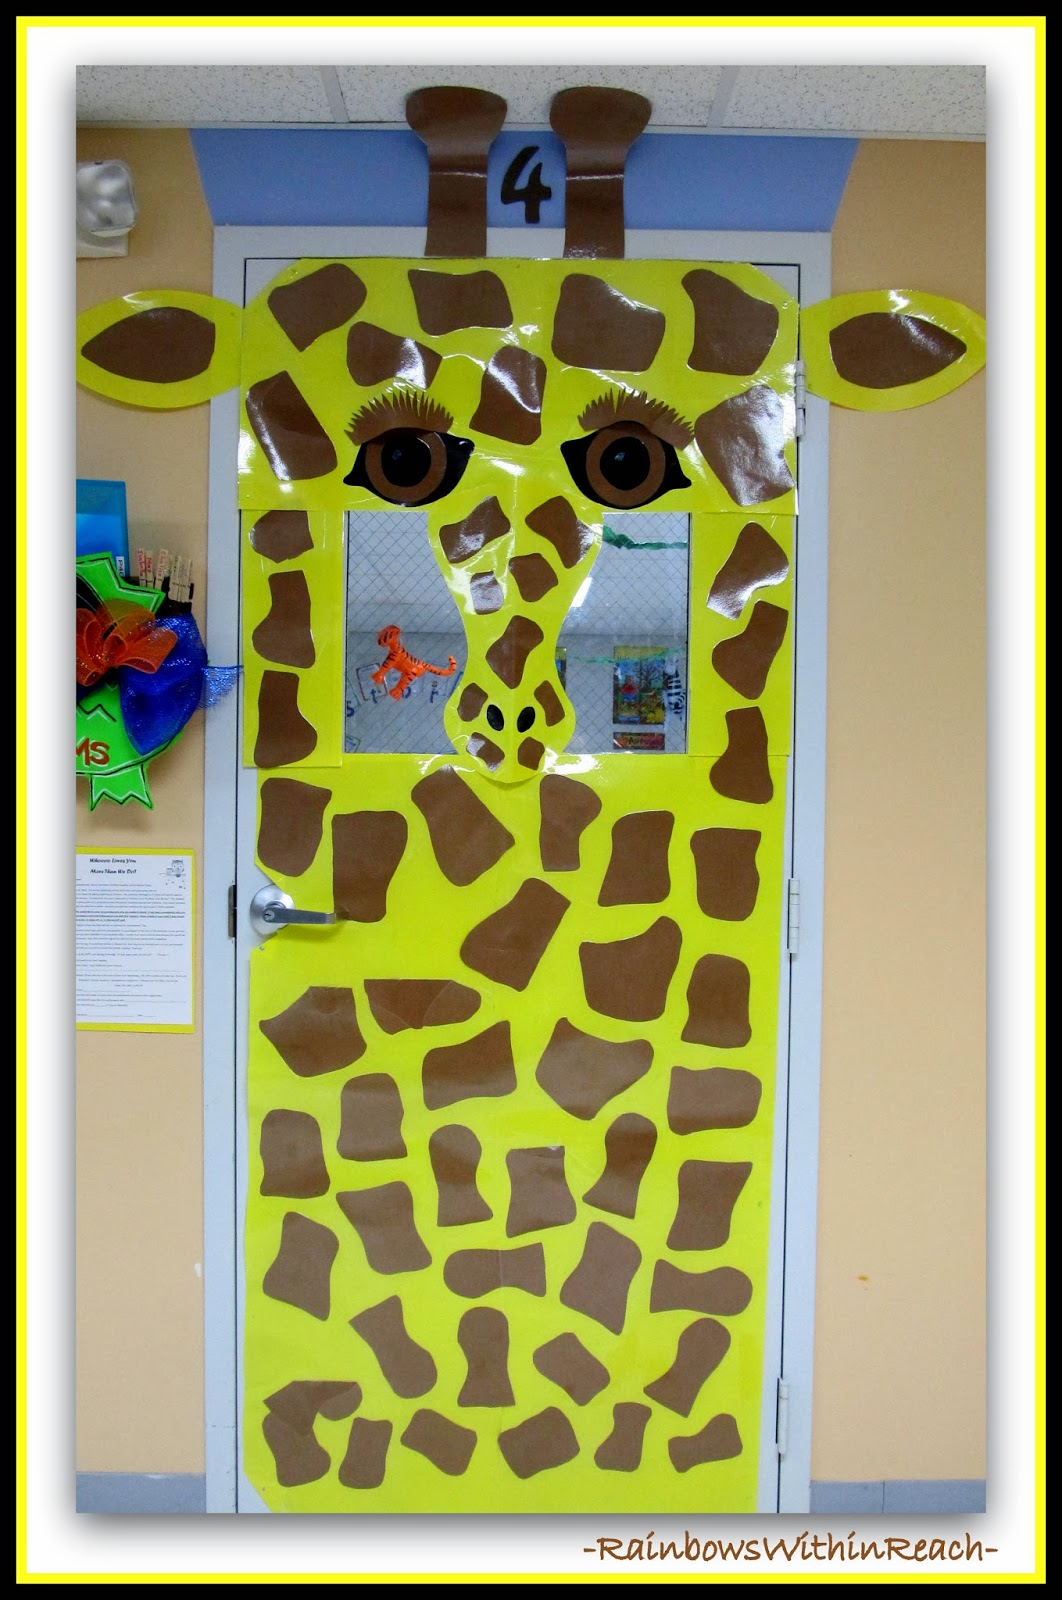 Rainbowswithinreach Jungle Animals As Door Decorations In Preschool